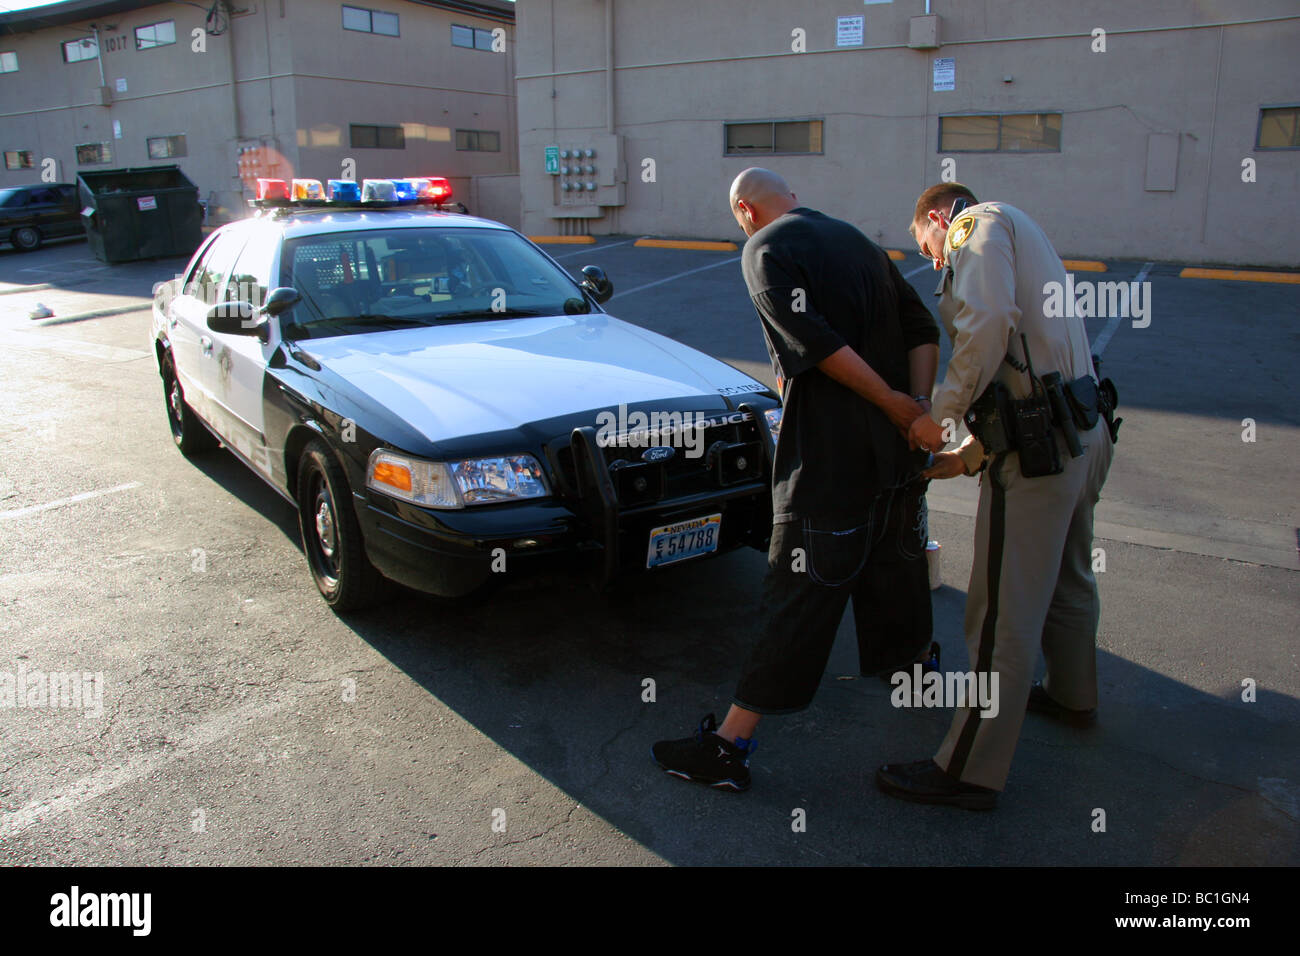 Man being searched by a Las Vegas police officer - Stock Image